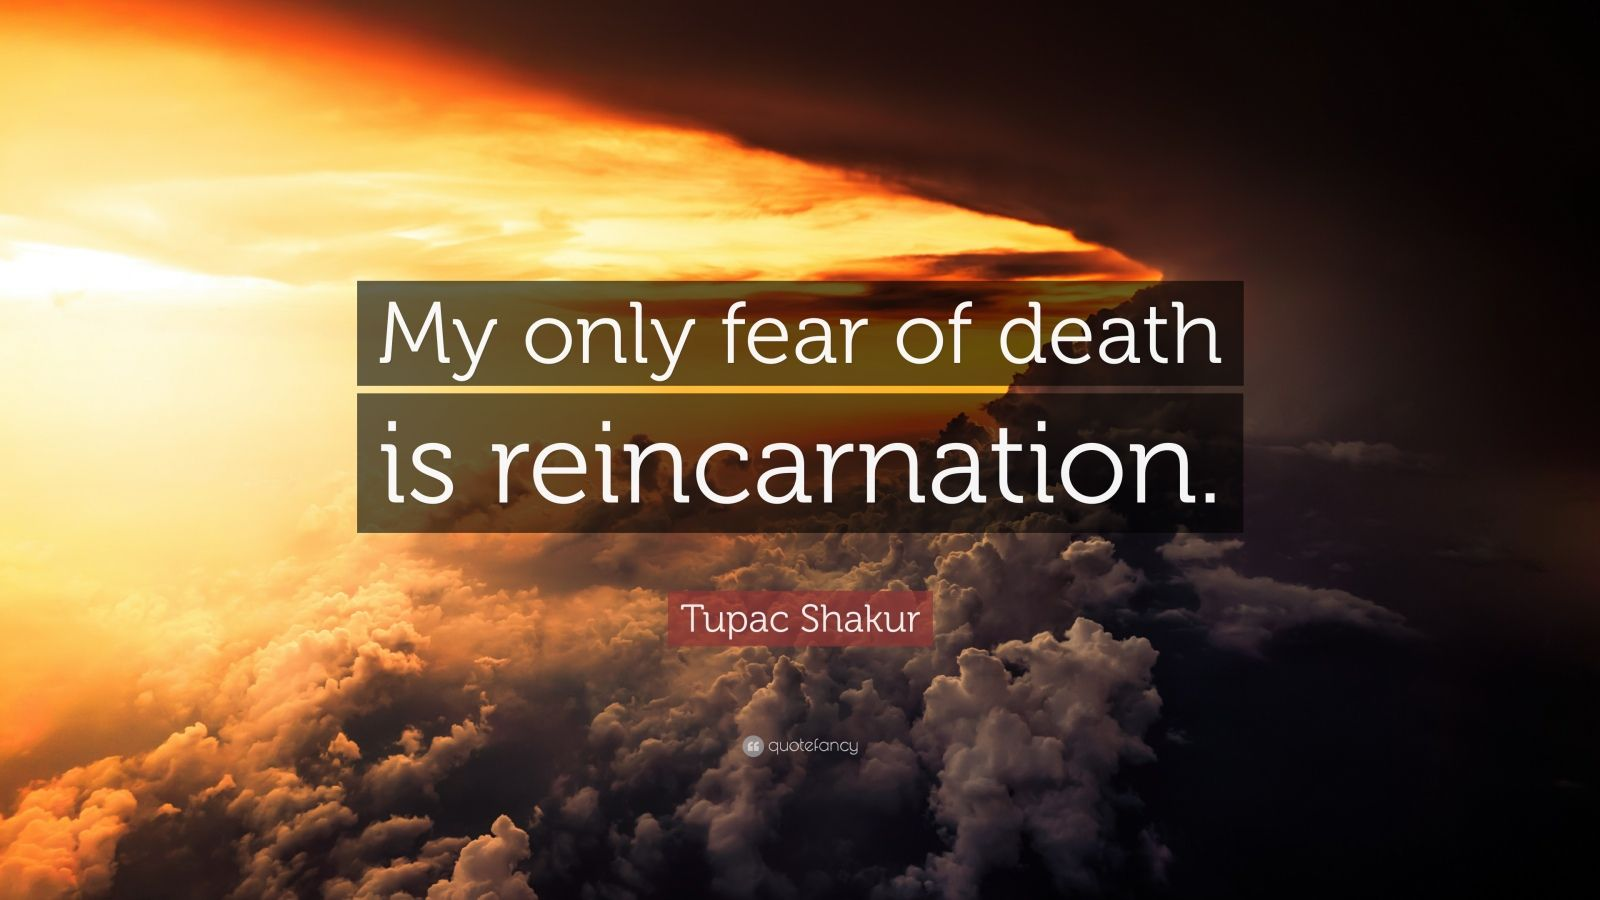 Mother Teresa Quotes Wallpapers Tupac Shakur Quote My Only Fear Of Death Is